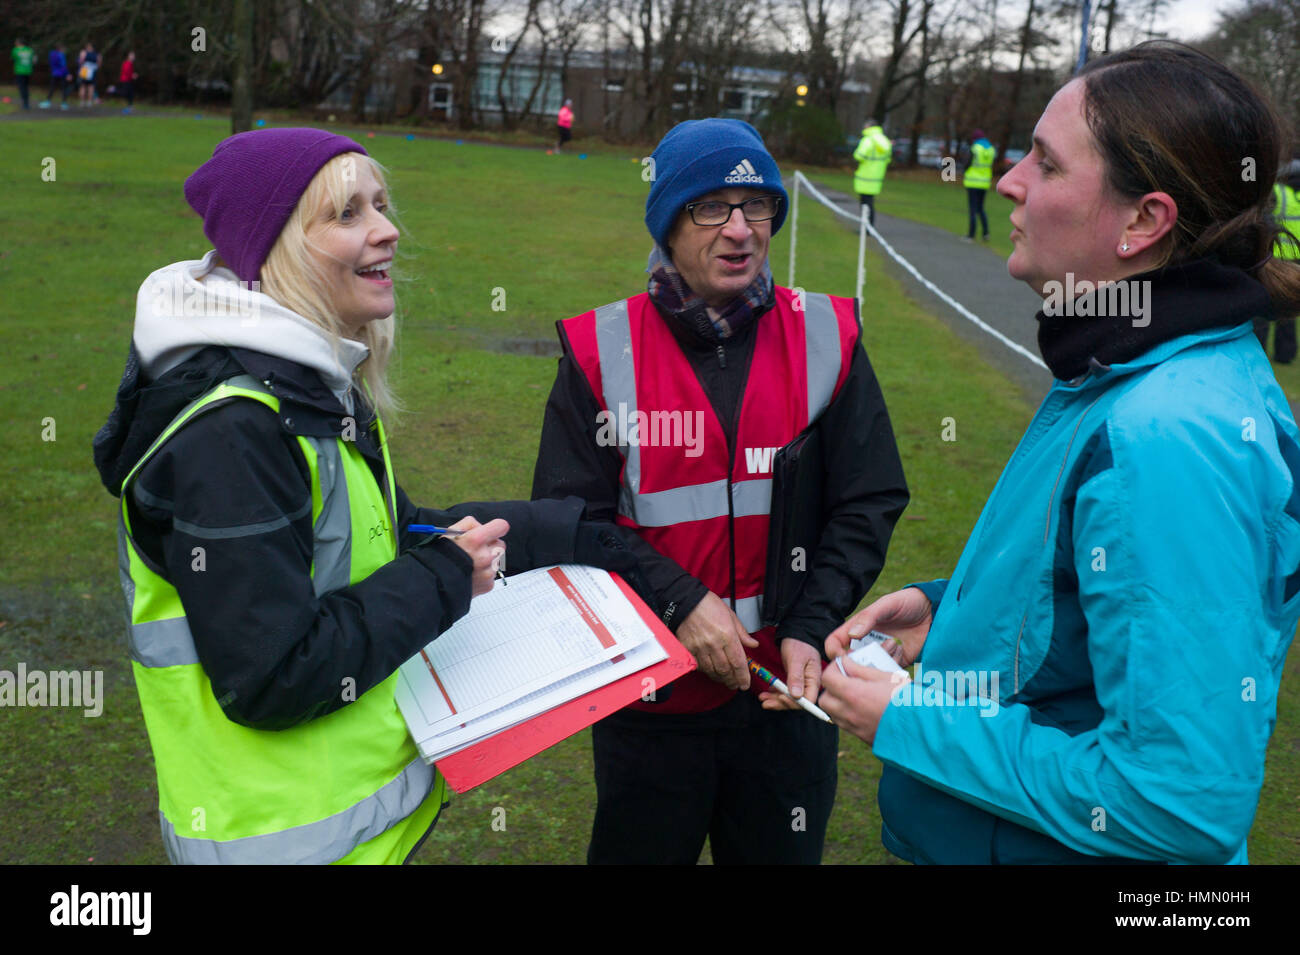 Aberdeen, UK. 4th February, 2017. Volunteer organisers and helpers at the Aberdeen weekly Park Run on a wet Saturday - Stock Image